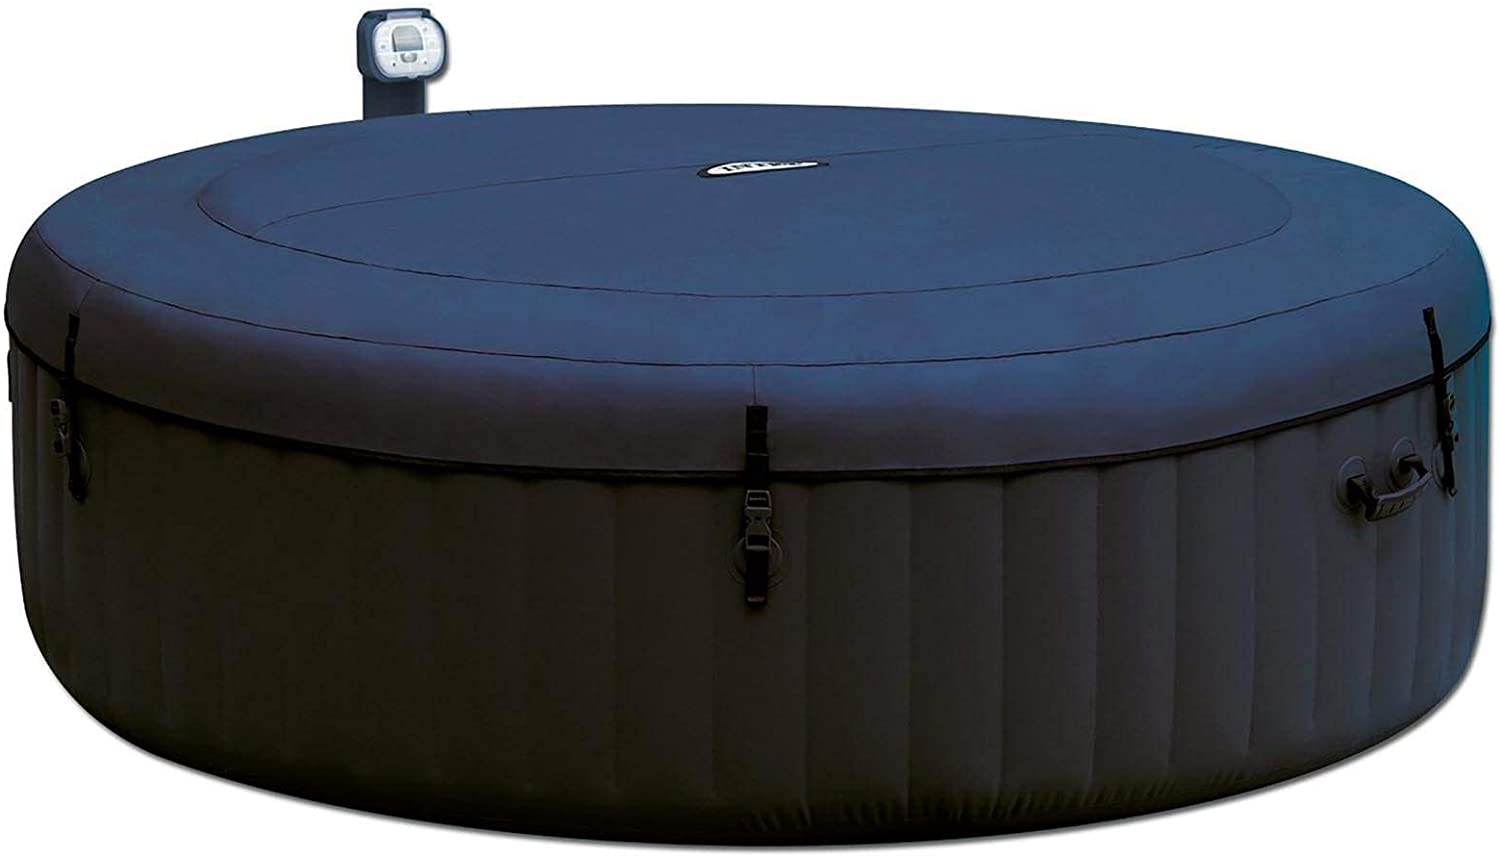 Intex Pure Spa 6 Person Inflatable Portable Outdoor Bubble Jets Hot Tub 28409EIntex Removable Slip-Resistant Seat for Inflatable Pure Spa Hot Tub 28502E 2 Pack